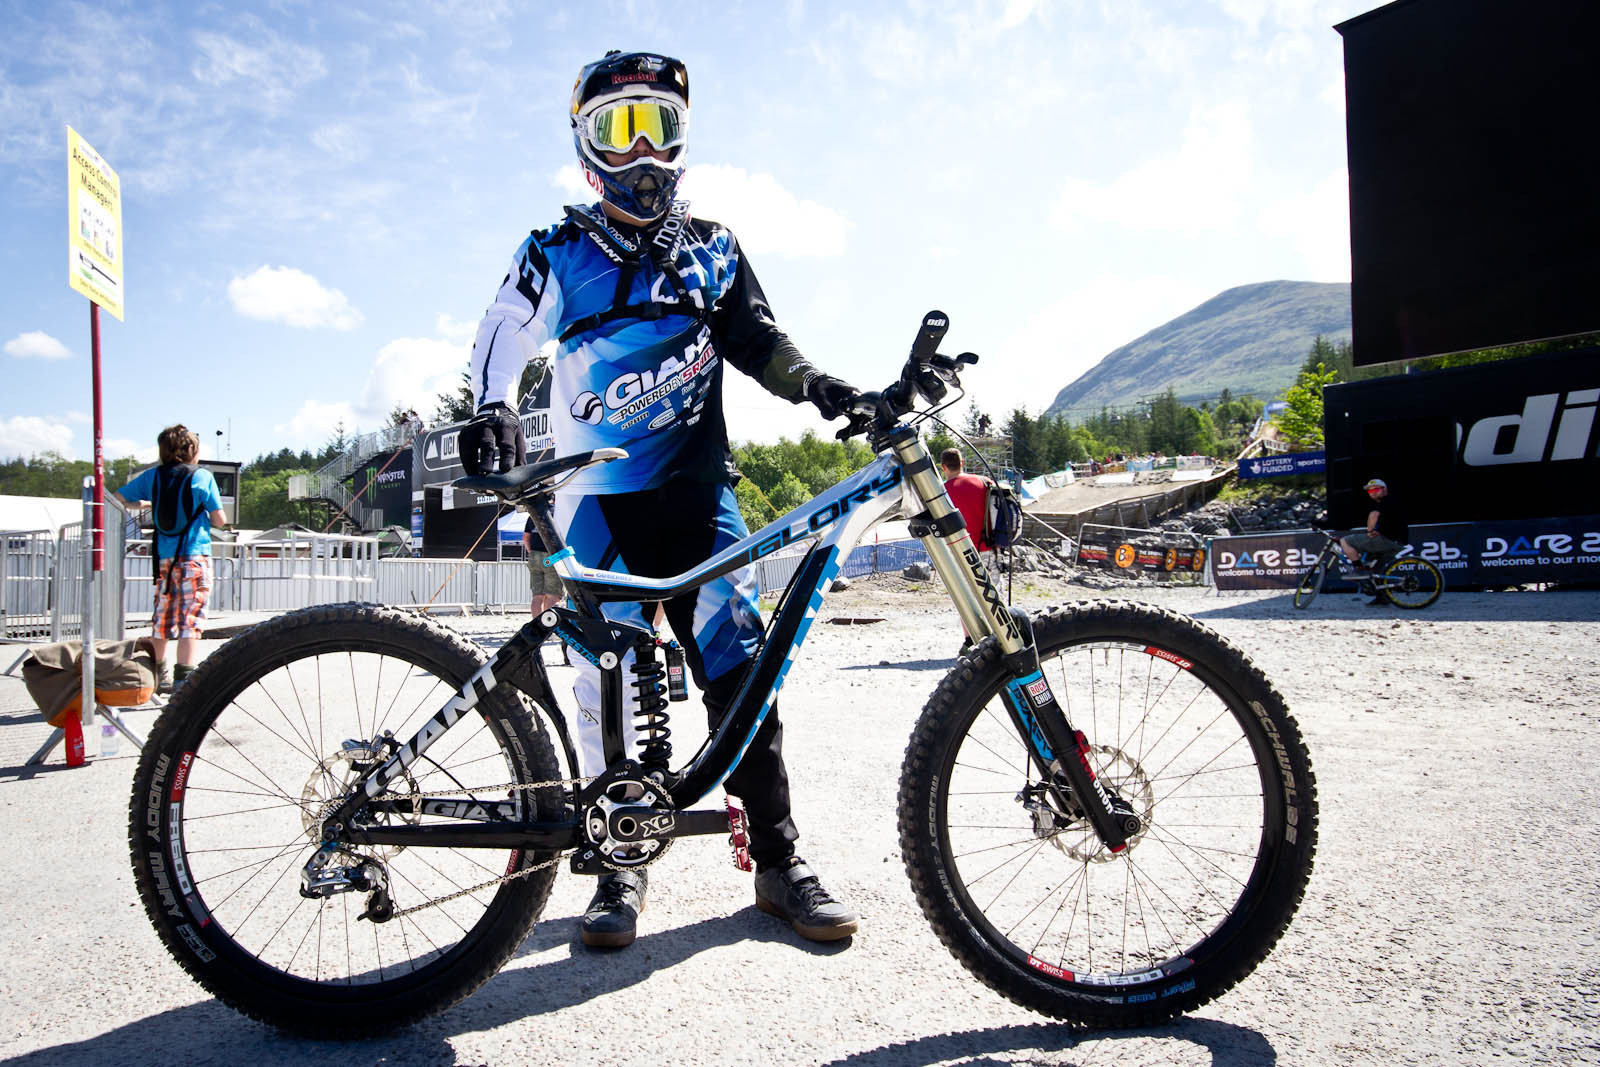 Marcelo Gutierrez's Giant Glory - 24 Pro DH BIkes from Fort William World Cup - Mountain Biking Pictures - Vital MTB